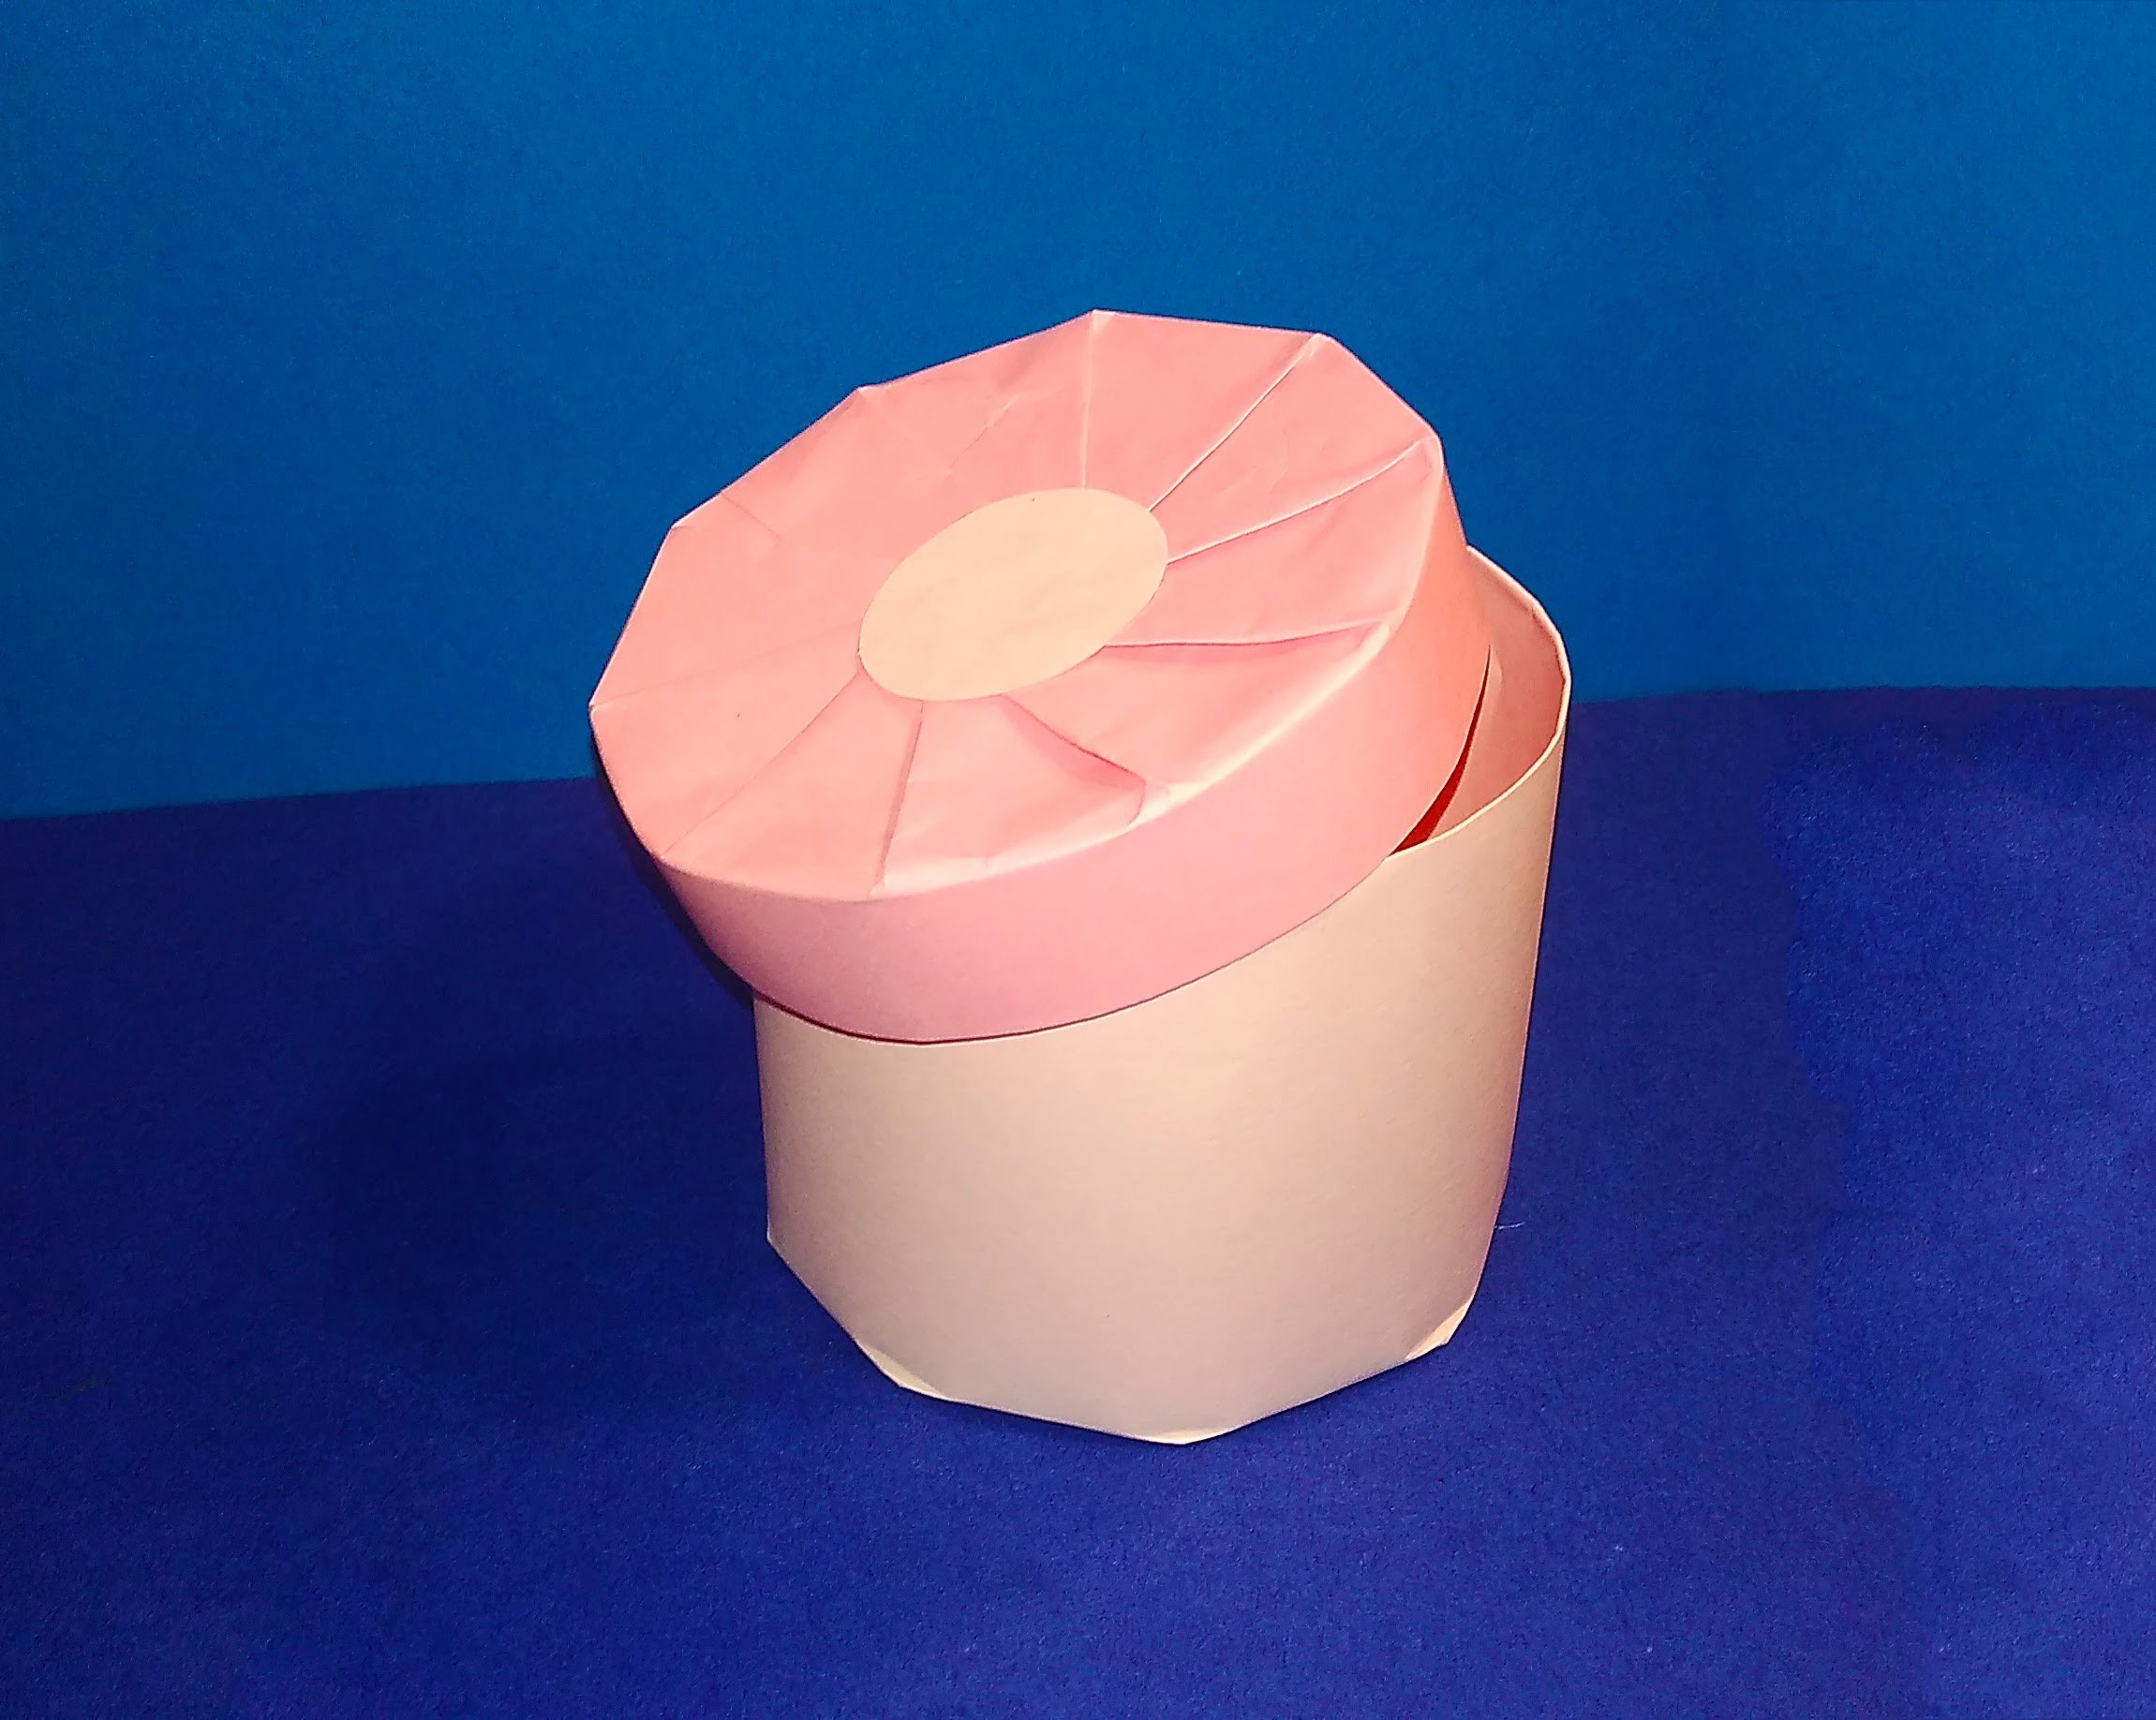 DIY Cylindrical Gift Box ! Easy candy round shape box! Great ideas for Christmas!  Caixa redonda